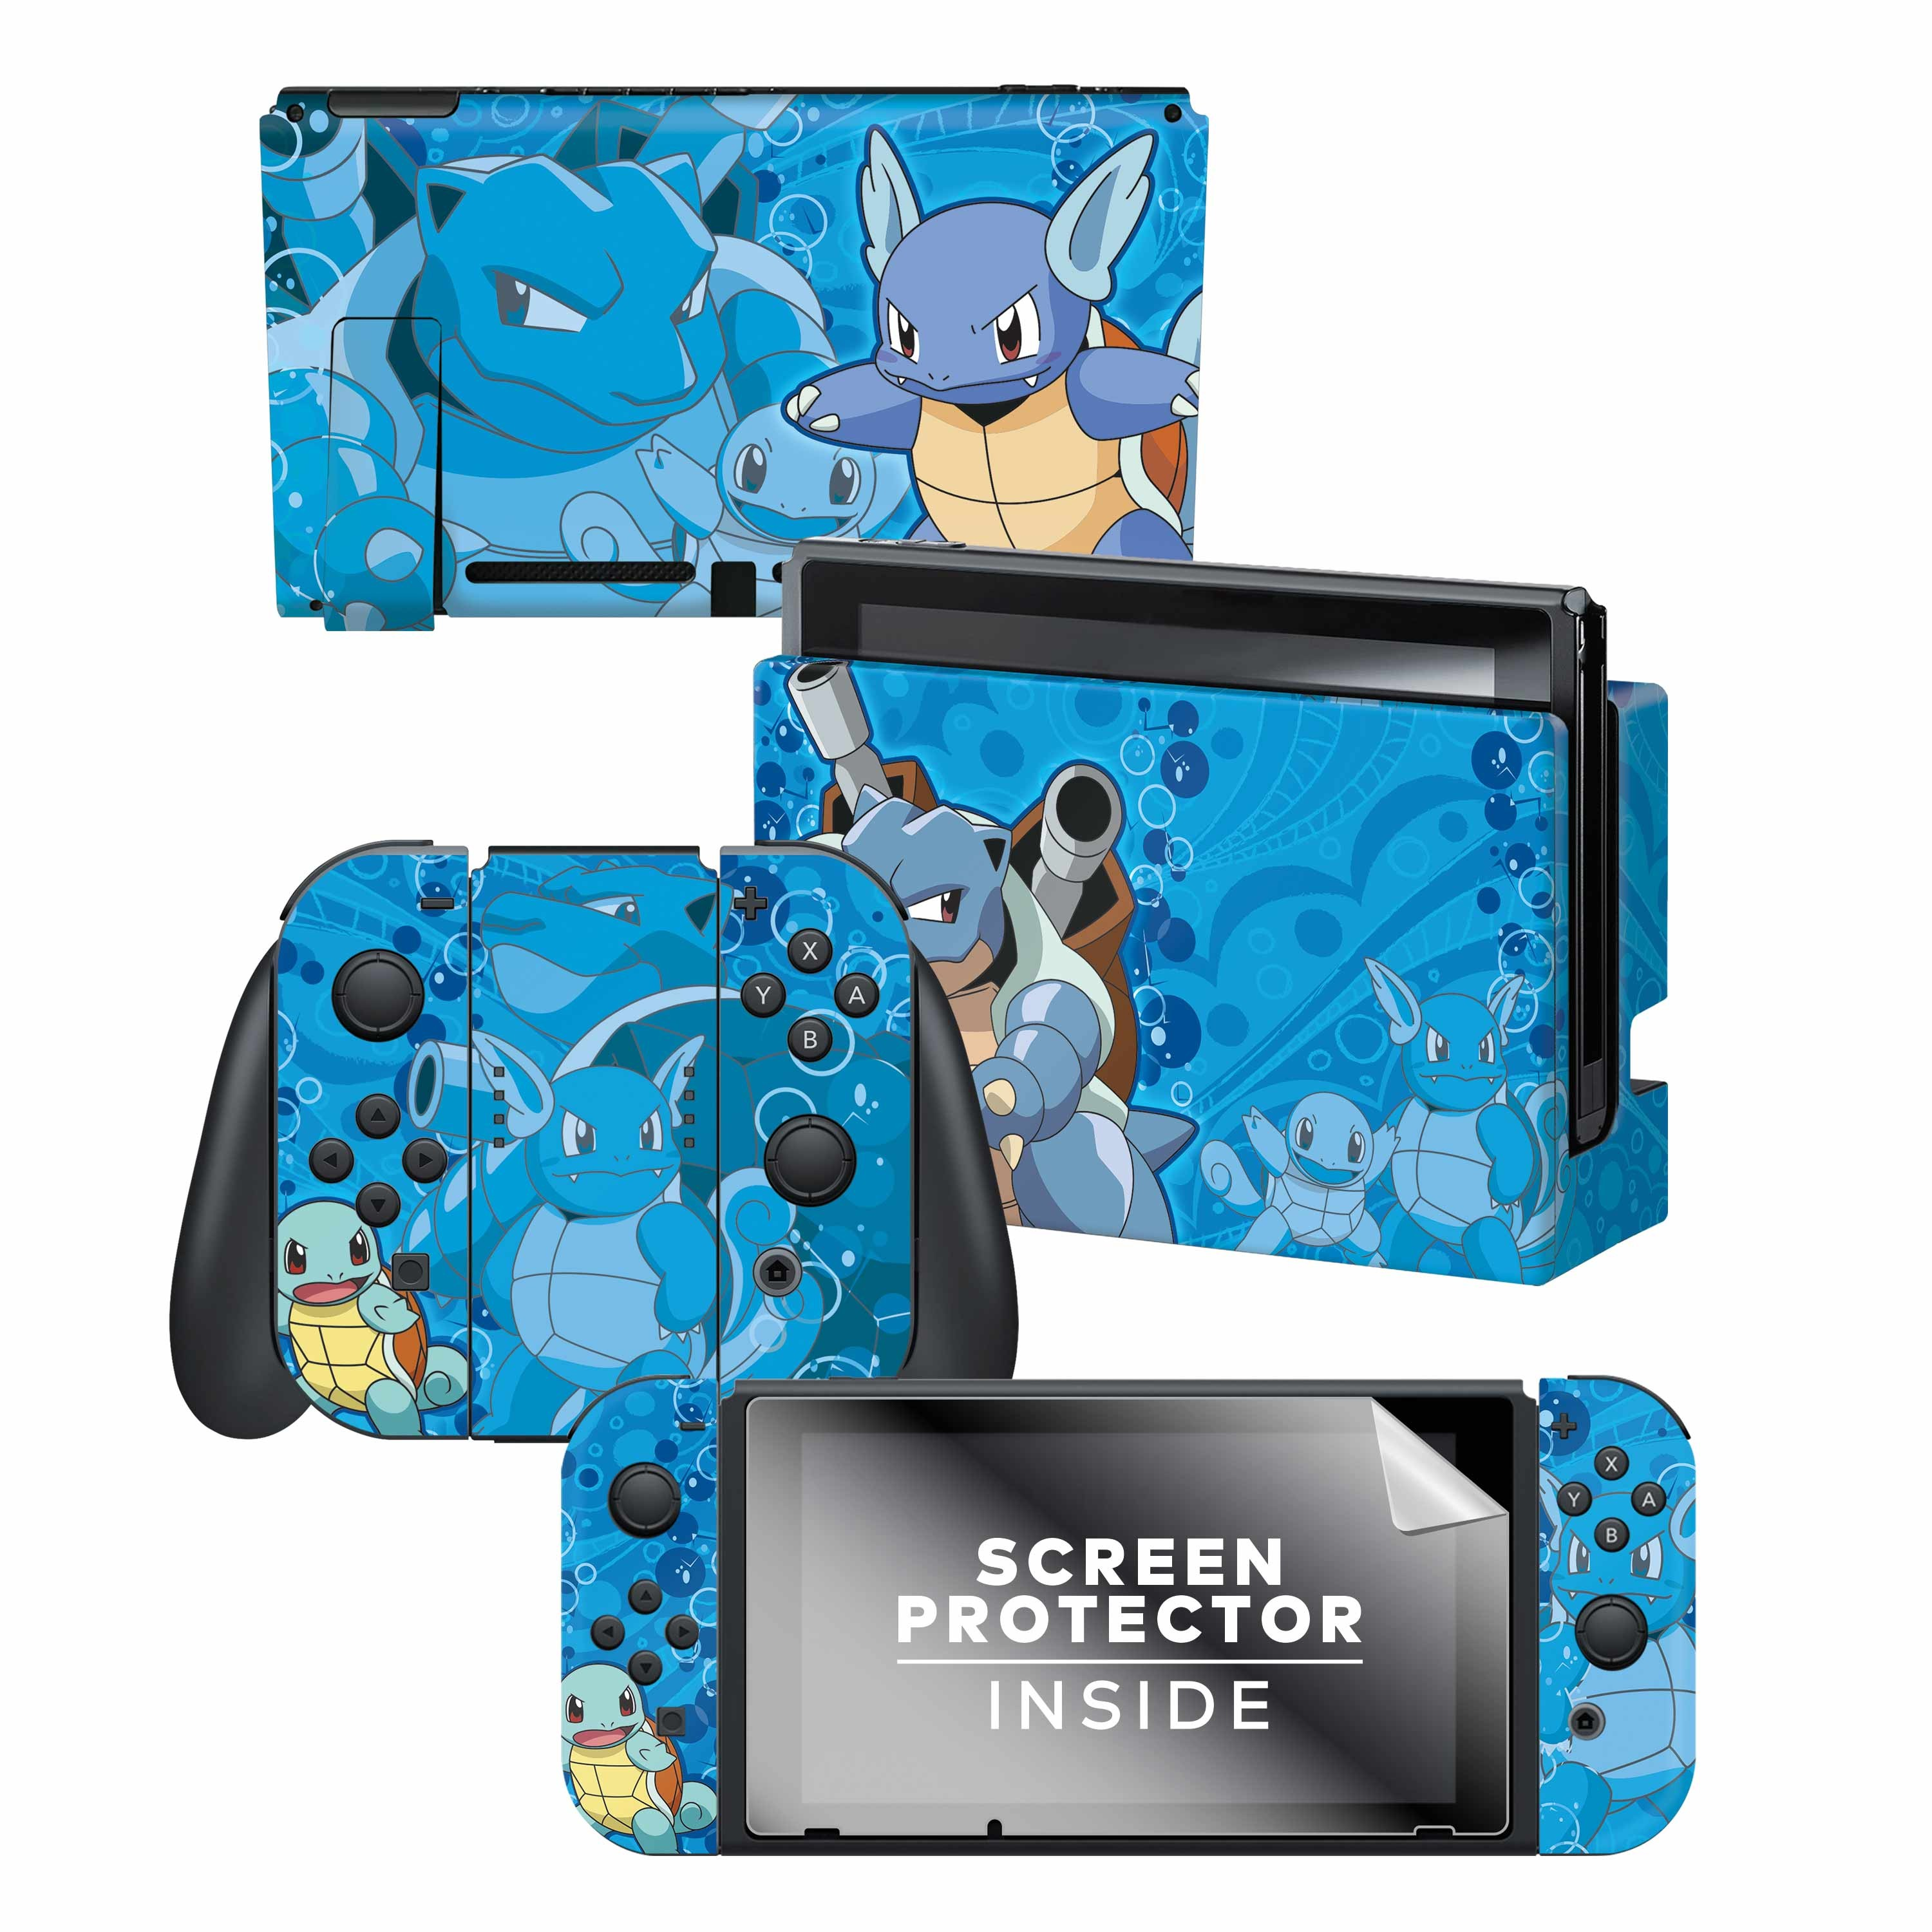 Nintendo Switch Skin & Screen Protector Set with a Pokemon Squirtle Evolutions Design, Image 1